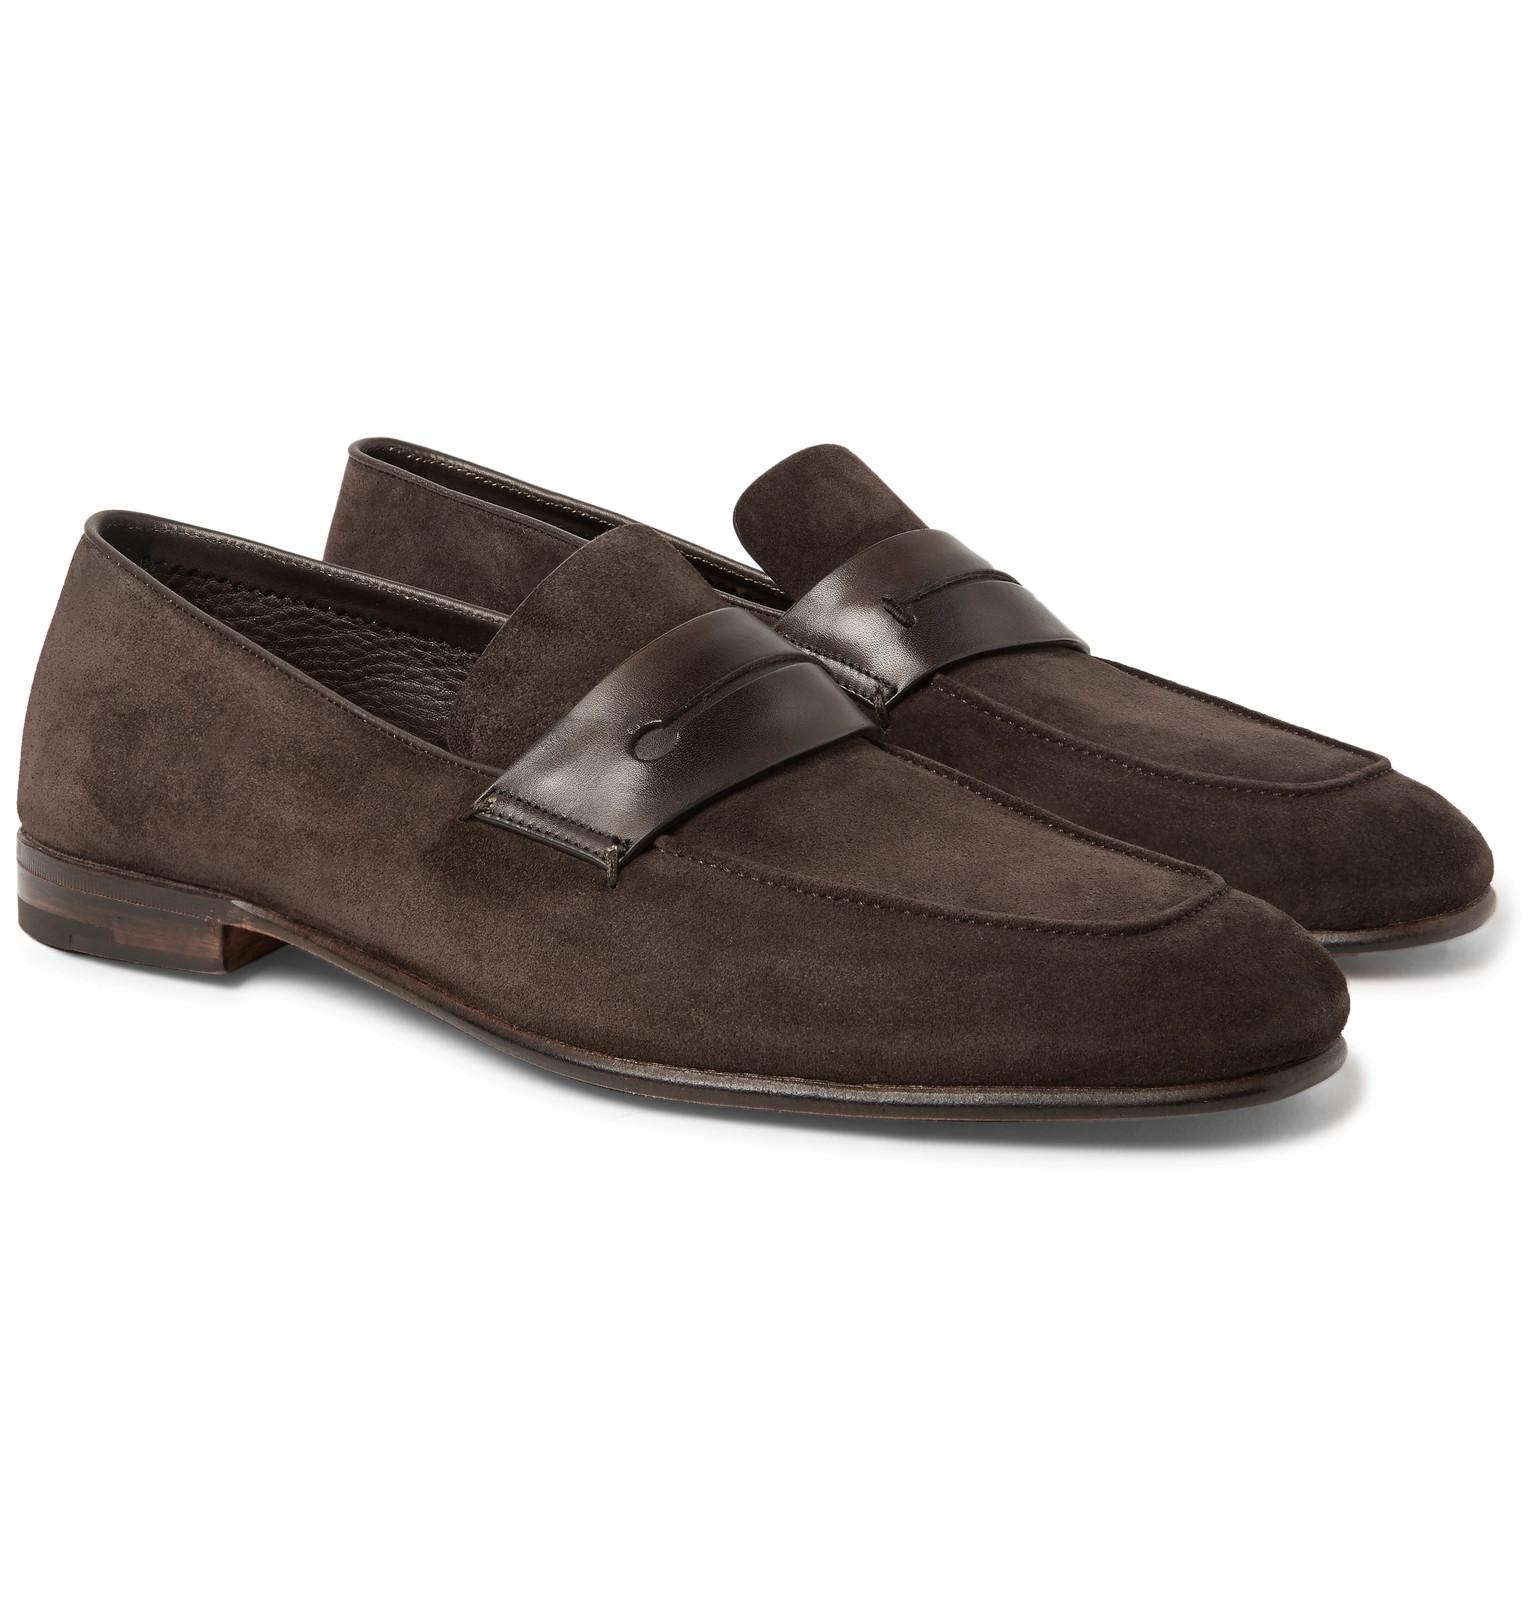 12c39ebe32b Ermenegildo Zegna Asola Leather-trimmed Suede Penny Loafers in Brown ...